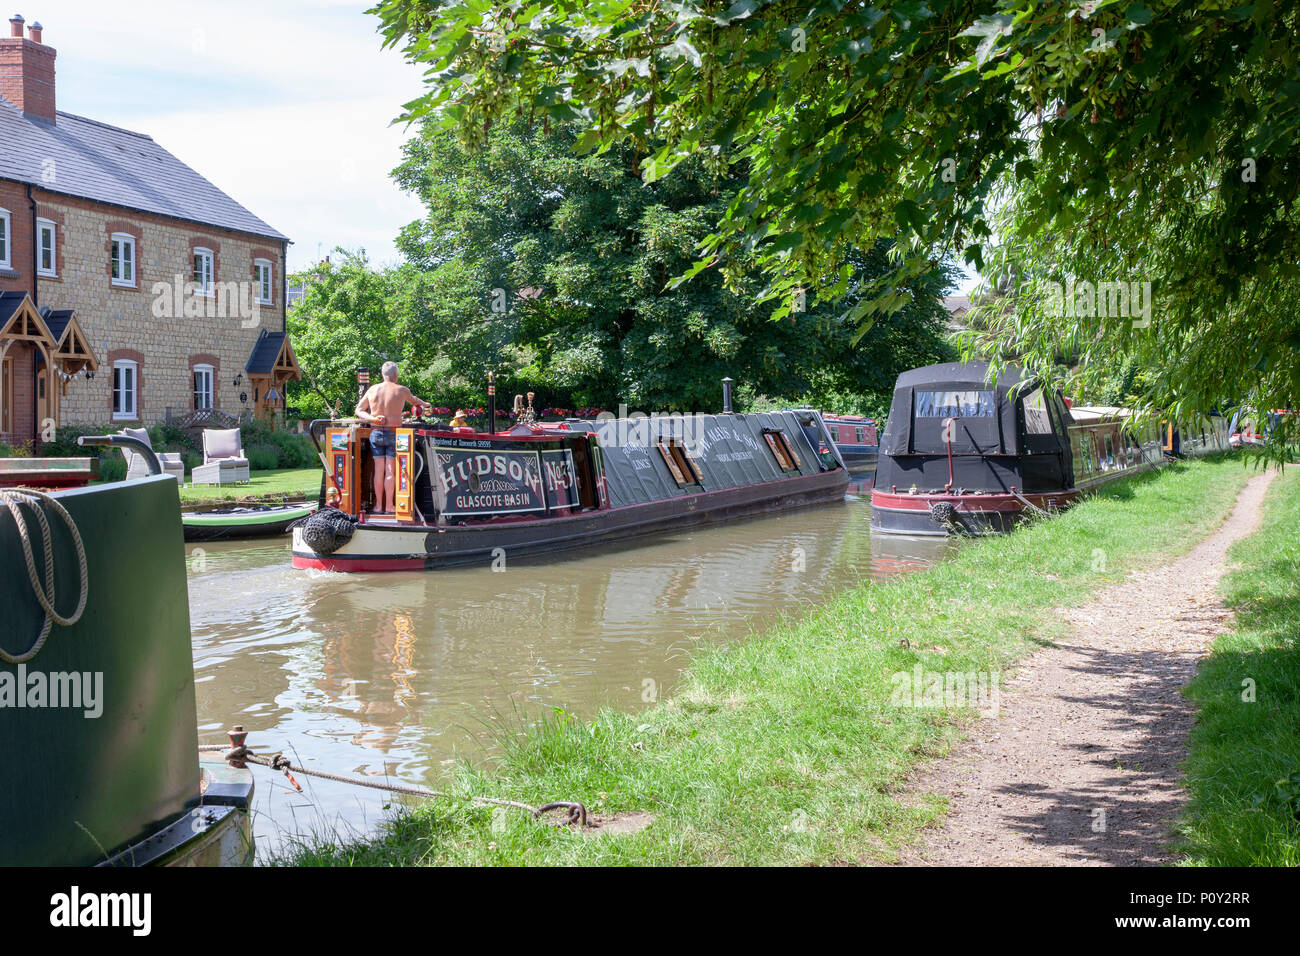 Cosgrove. Northamptnshire. Weather, U.K. 10th June 2018. Weather.  A Peaceful sunny Sunday afternoon on the Grand Union Canal. Credit: Keith J Smith./Alamy Live News - Stock Image